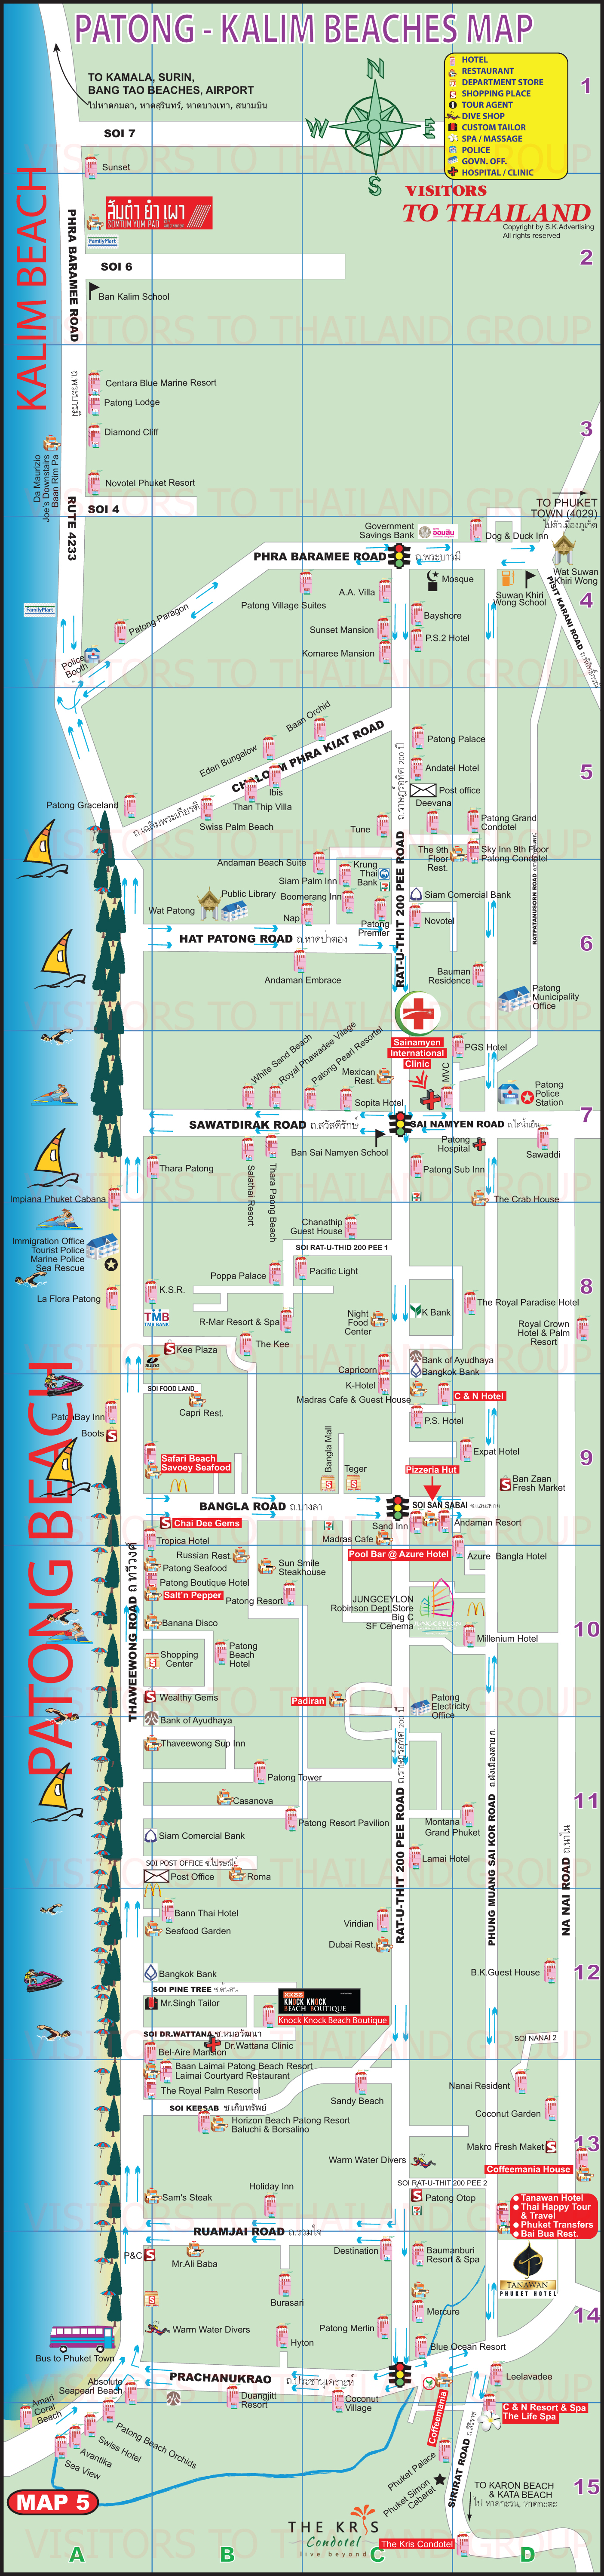 Patong Beach Map